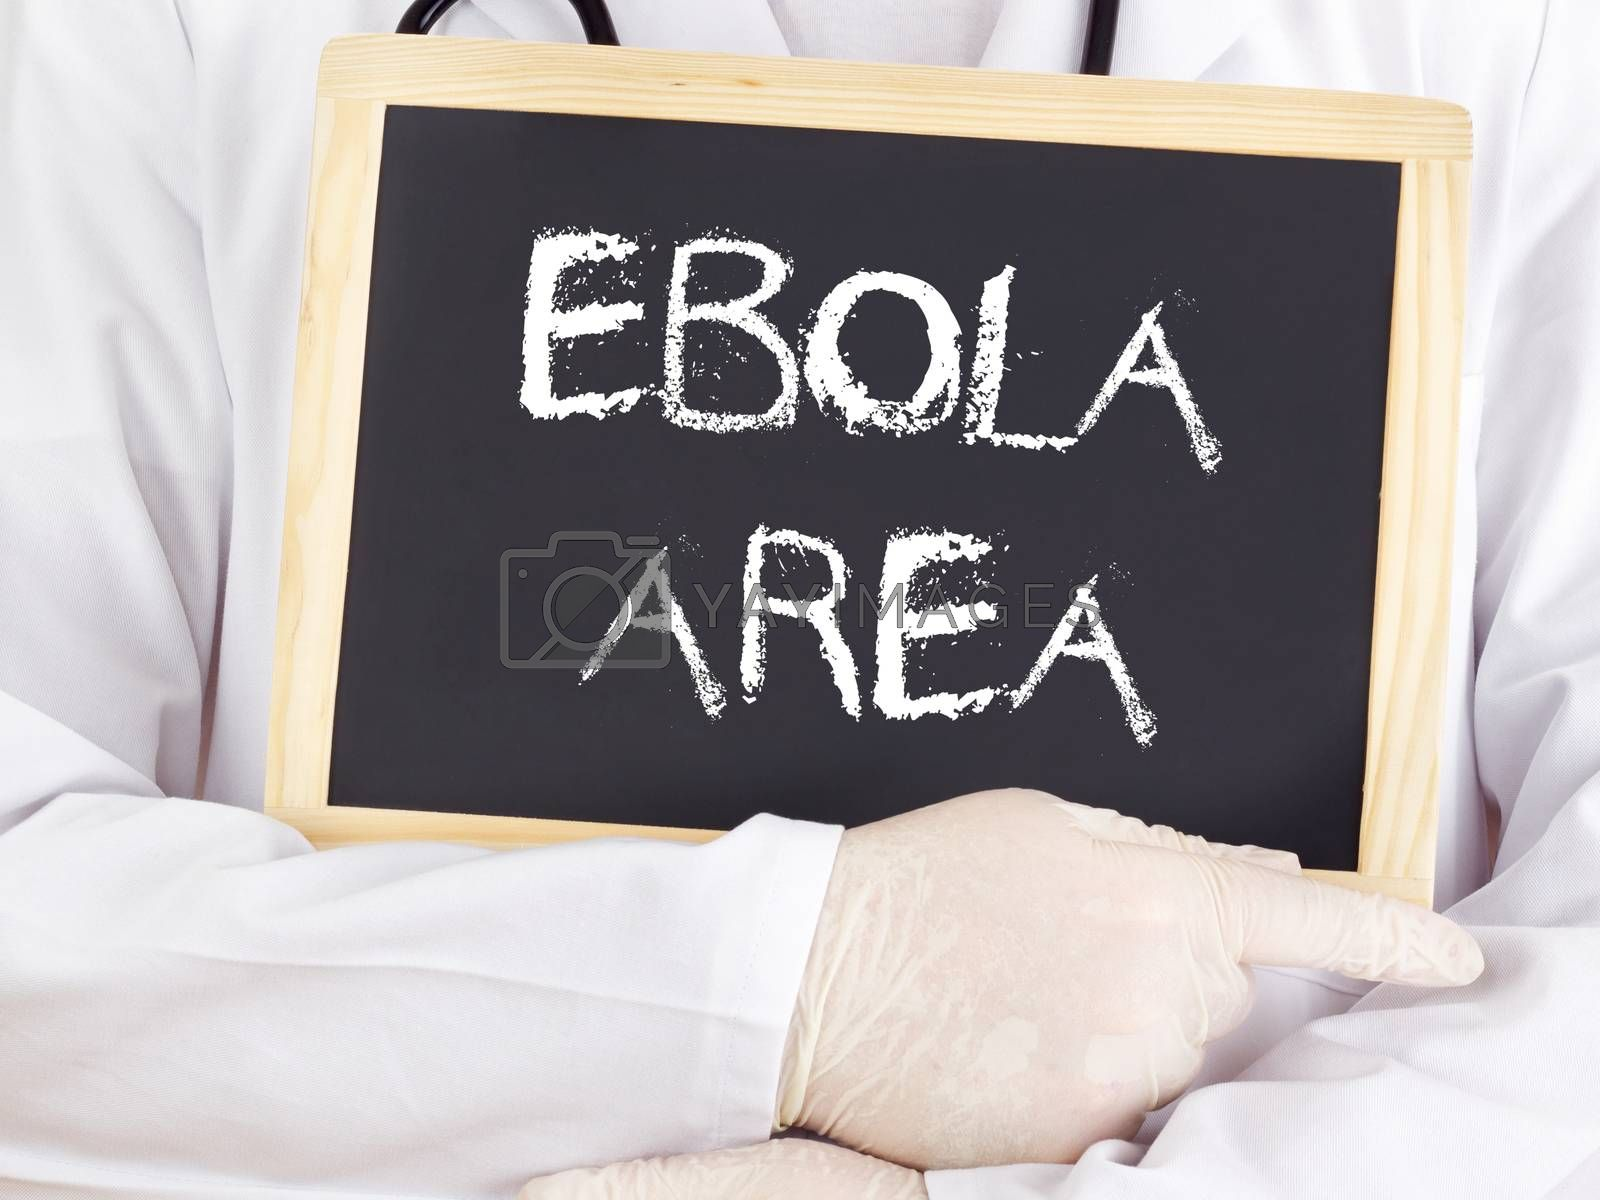 Doctor shows information: Ebola area